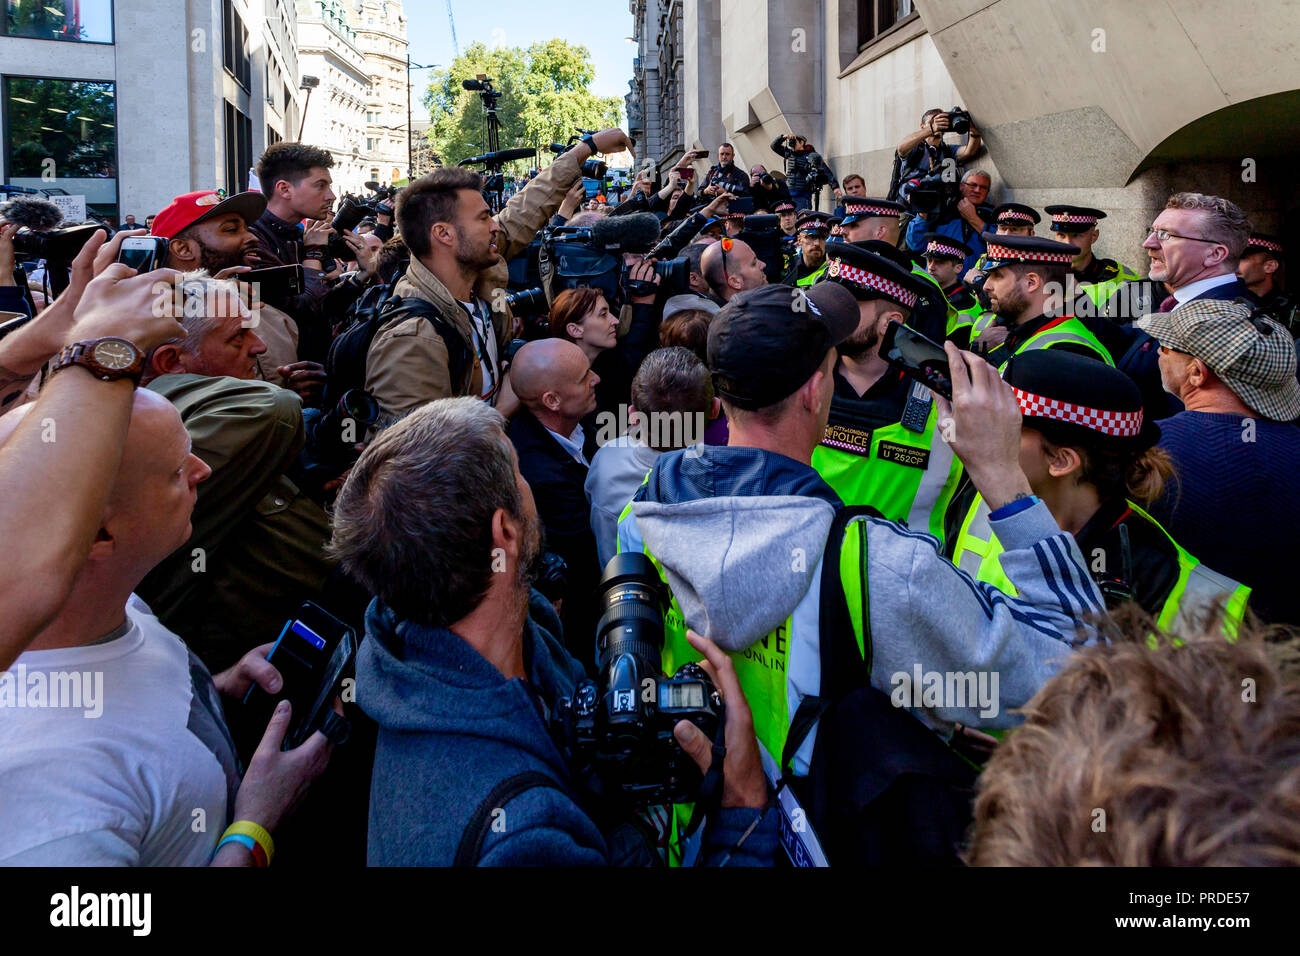 Kevin Carroll Briefs Supporters Of The Right Wing Activist Tommy Robinson and The Media Outside The Central Criminal Court 'The Old Bailey' London, UK - Stock Image